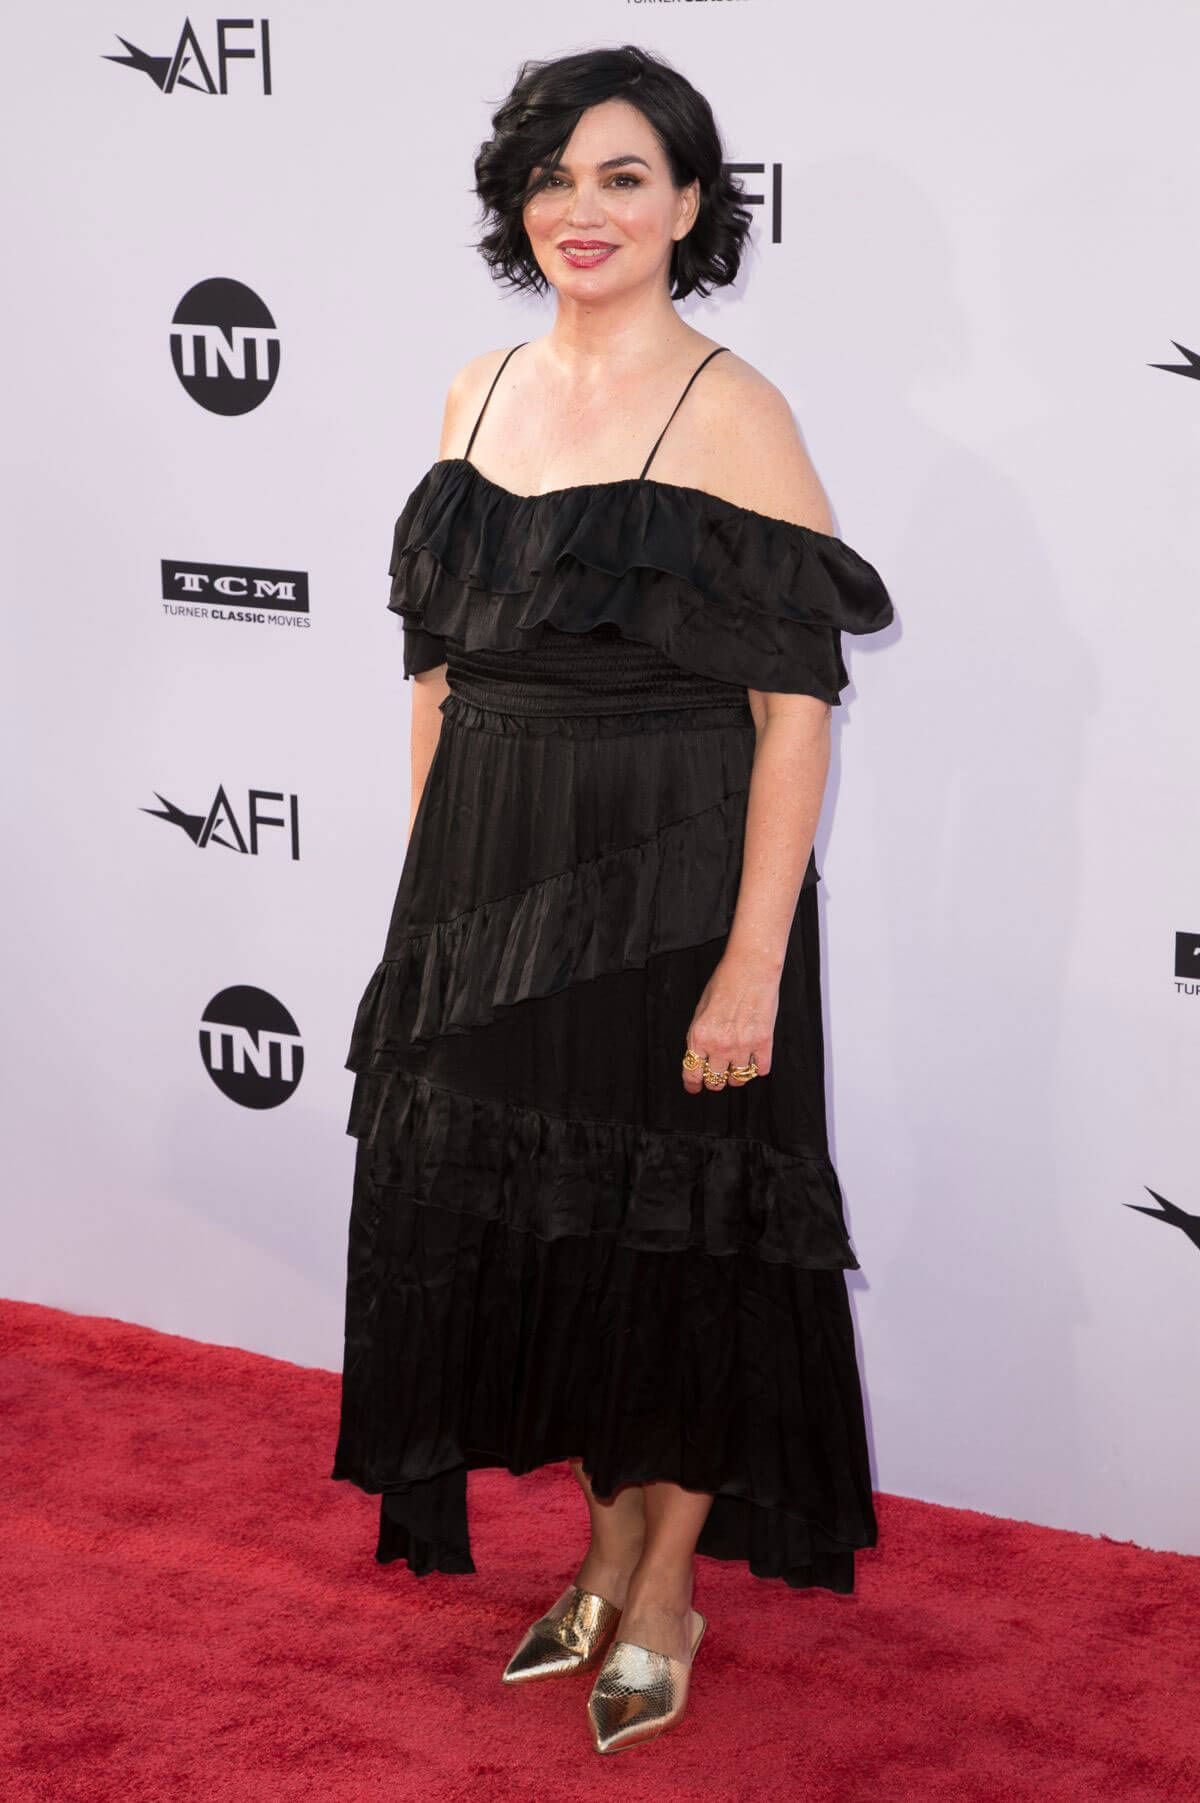 Karen Duffy at American Film Institute's 46th Life Achievement Award Gala Tribute to George Clooney in Hollywood 2018/06/07 1